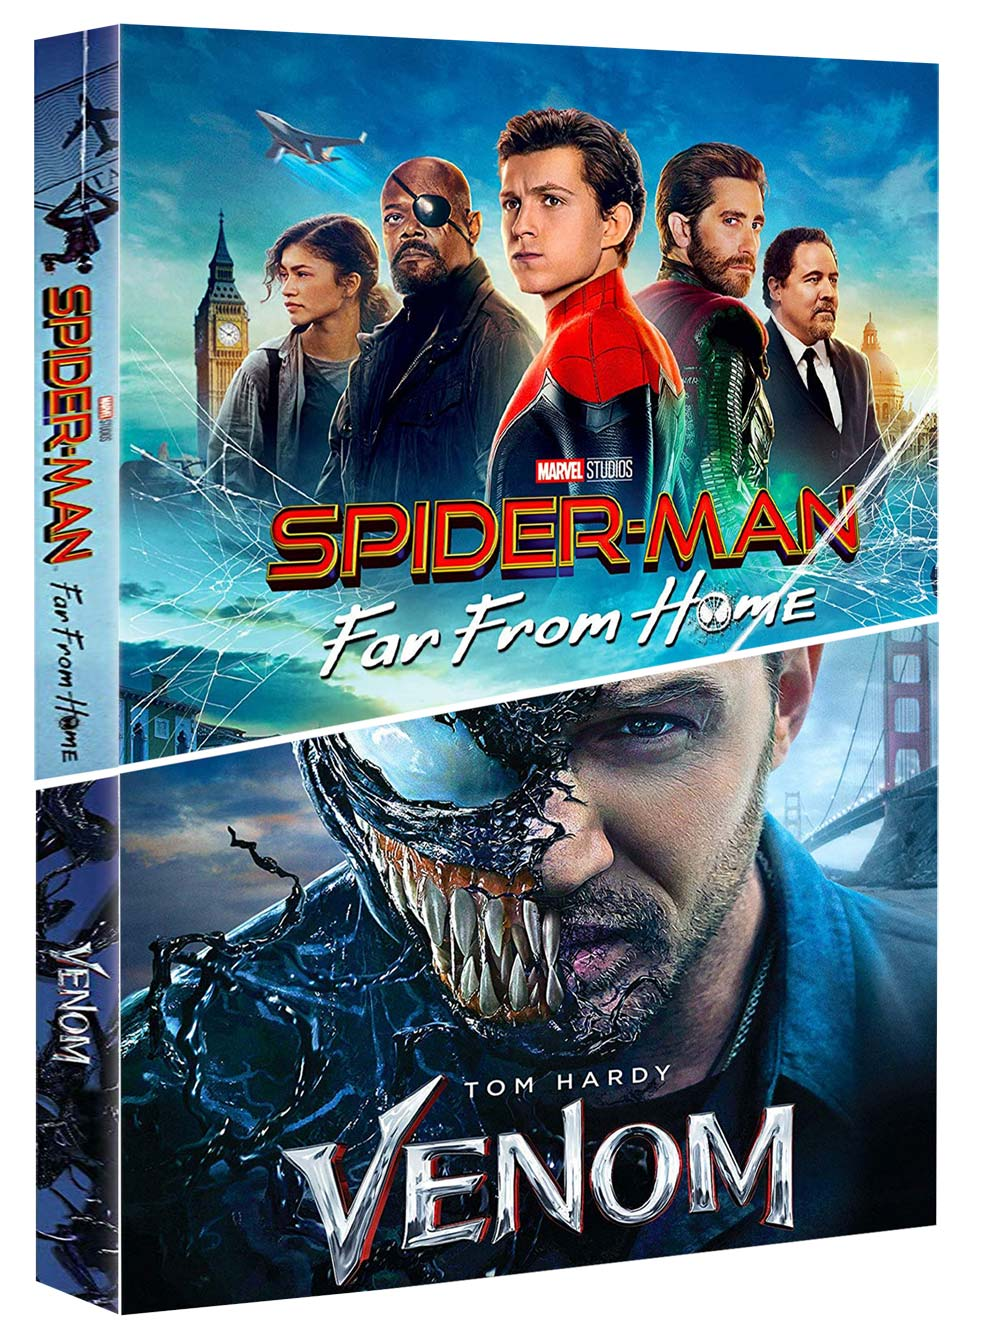 COF.VENOM / SPIDER-MAN: FAR FROM HOME (2 BLU-RAY)